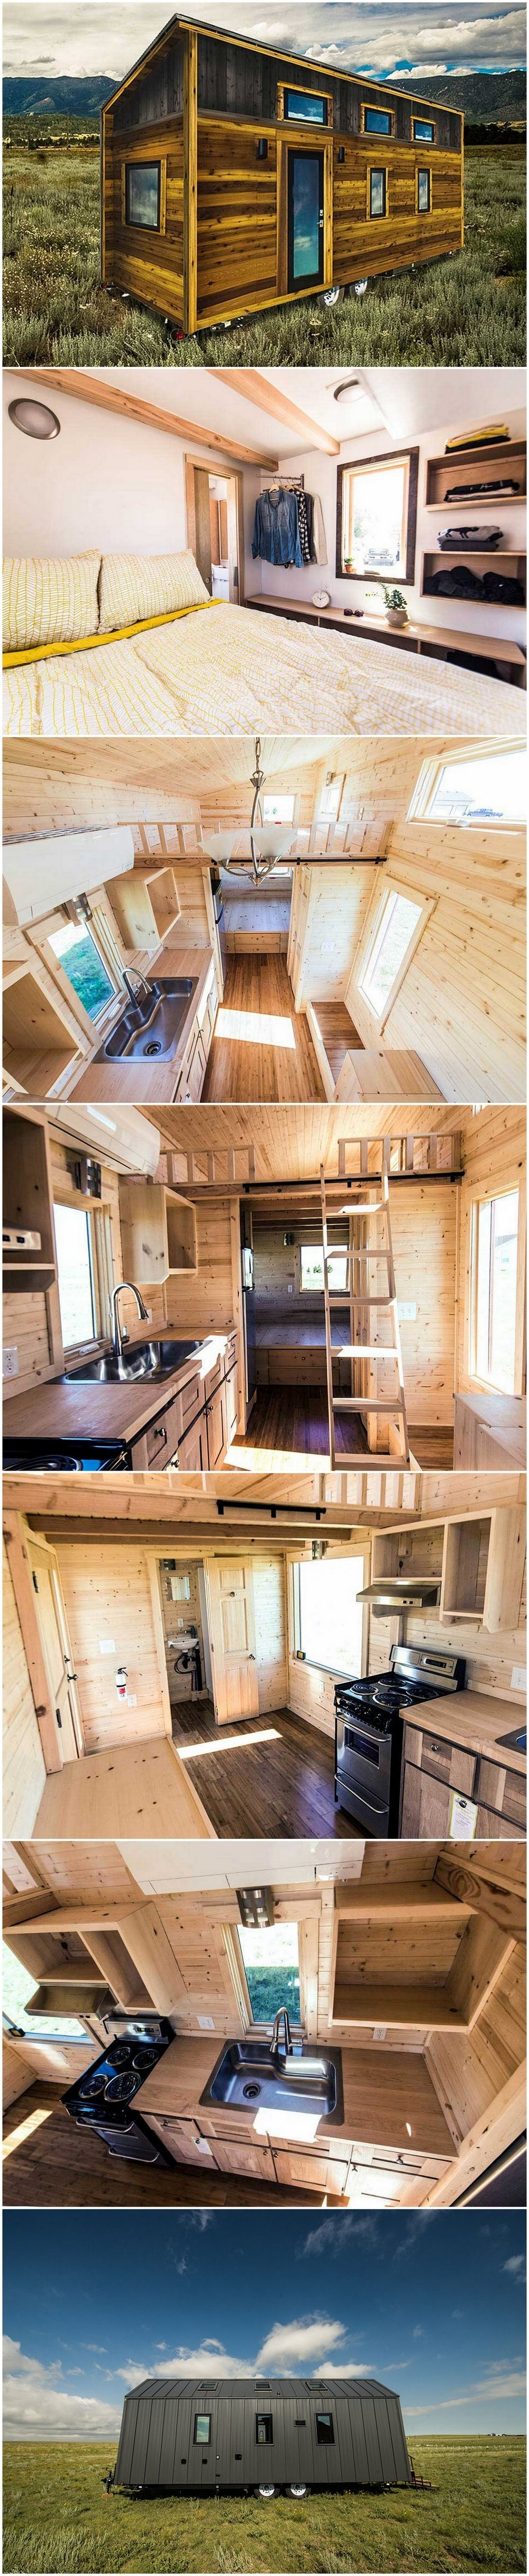 Roanoak RV Tiny House Plans